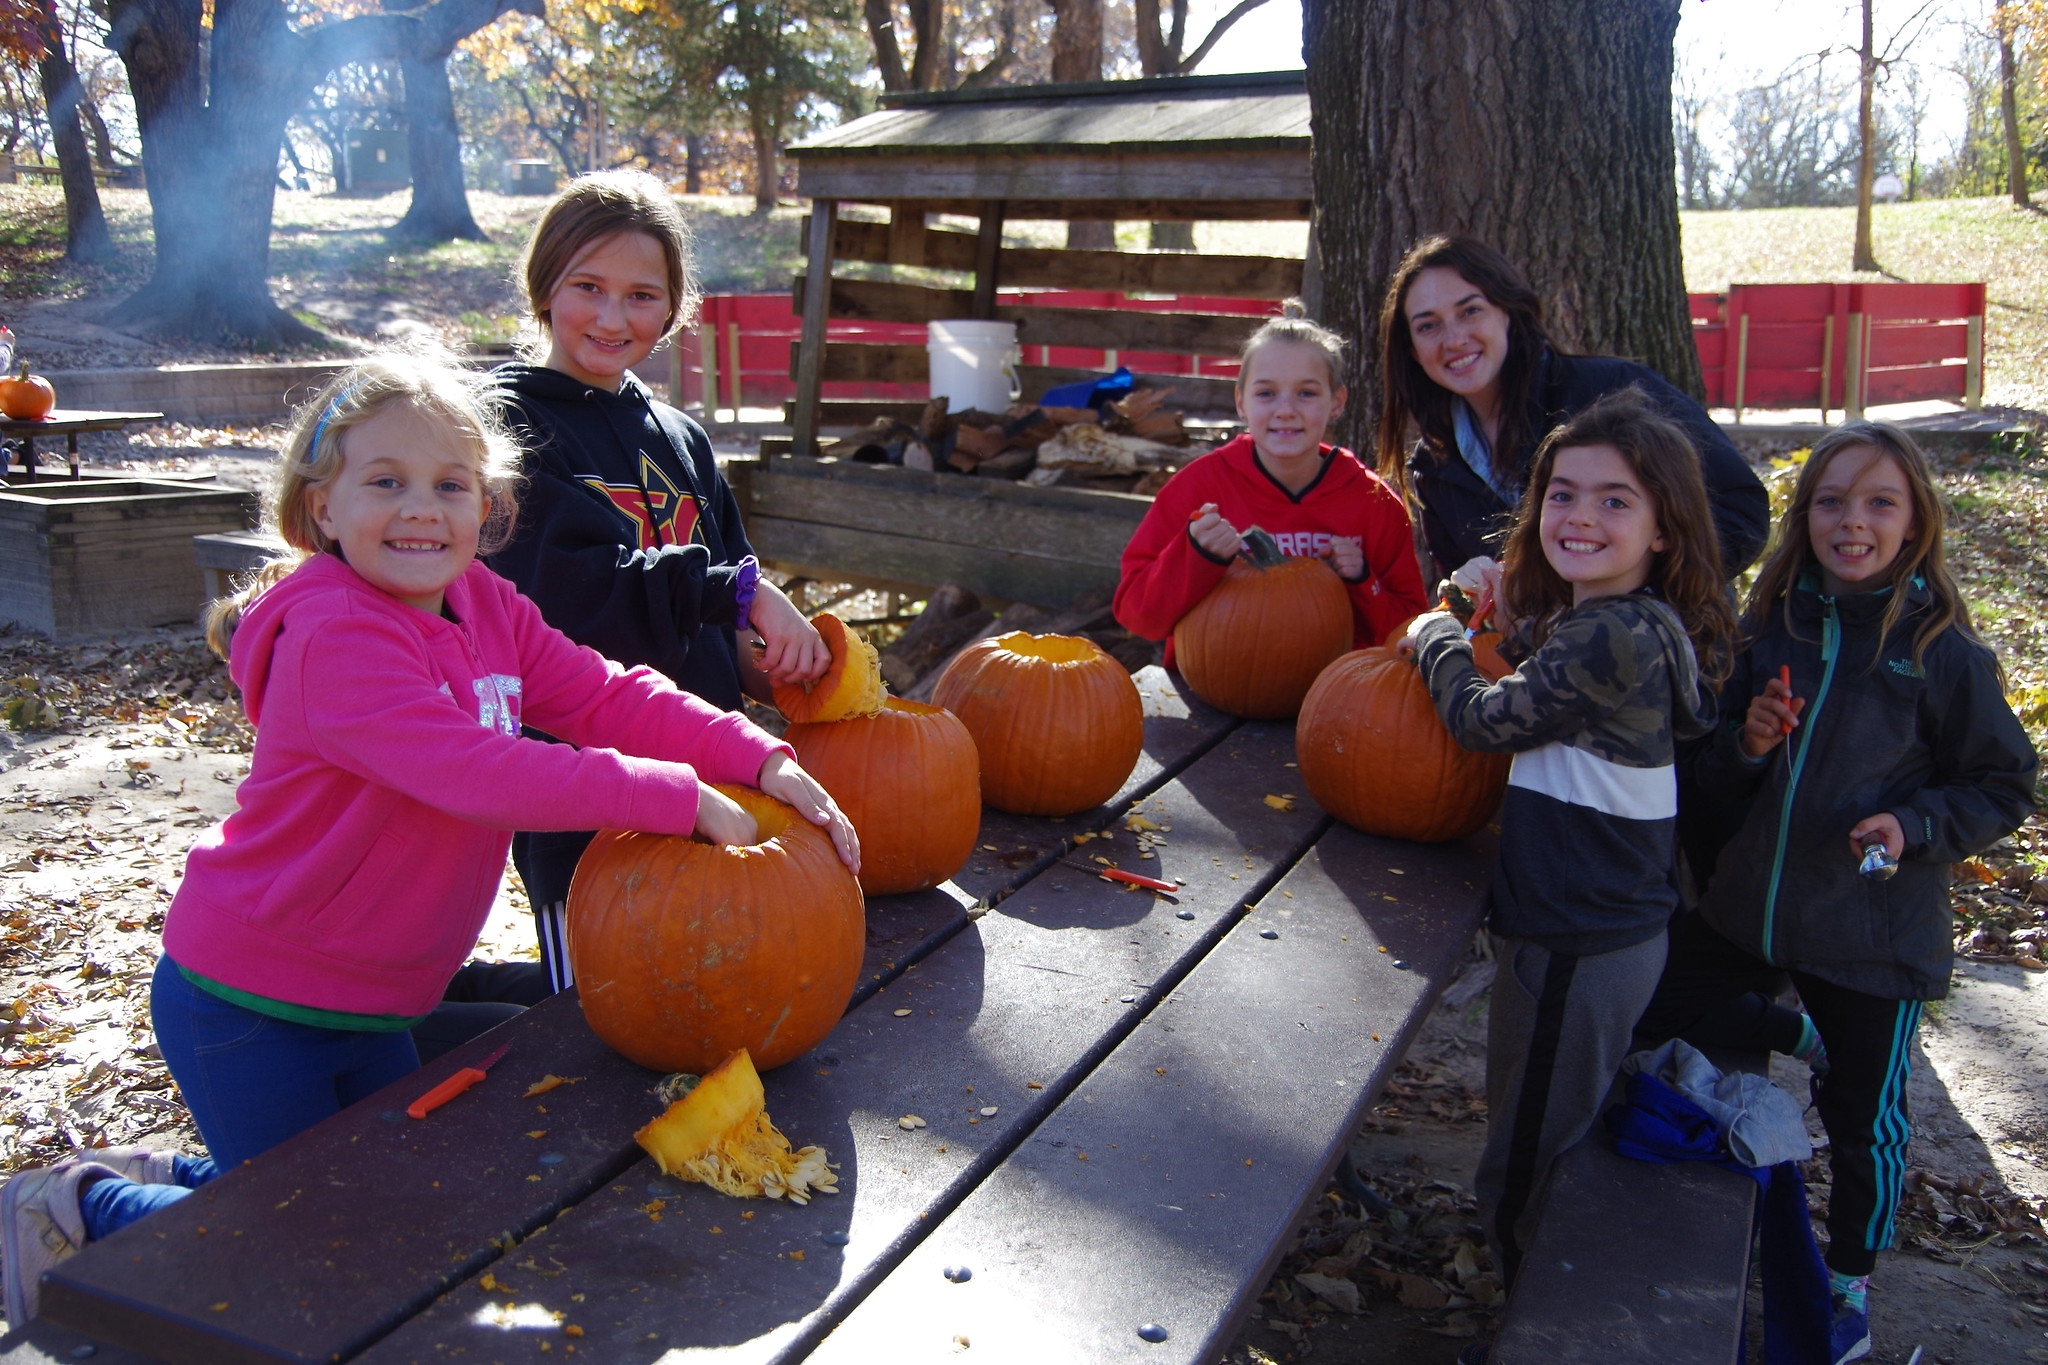 5 campers and a staff member begin to carve pumpkins on a picnic table